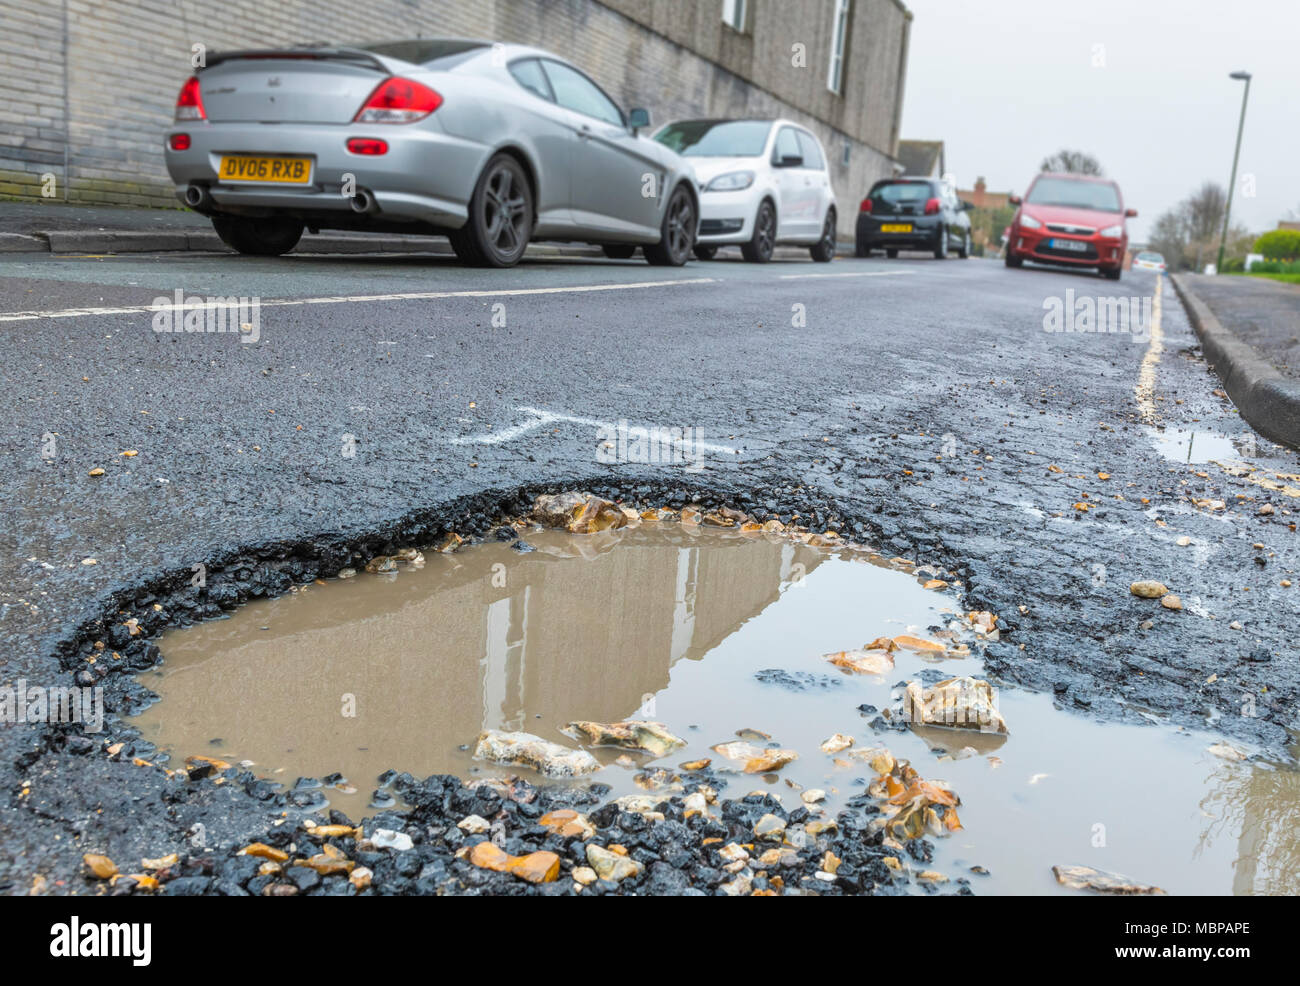 Pothole in an asphalt road filled with rain water in England, UK. Damaged road surface. Road in need or repair. Large potholes. Big pothole. - Stock Image